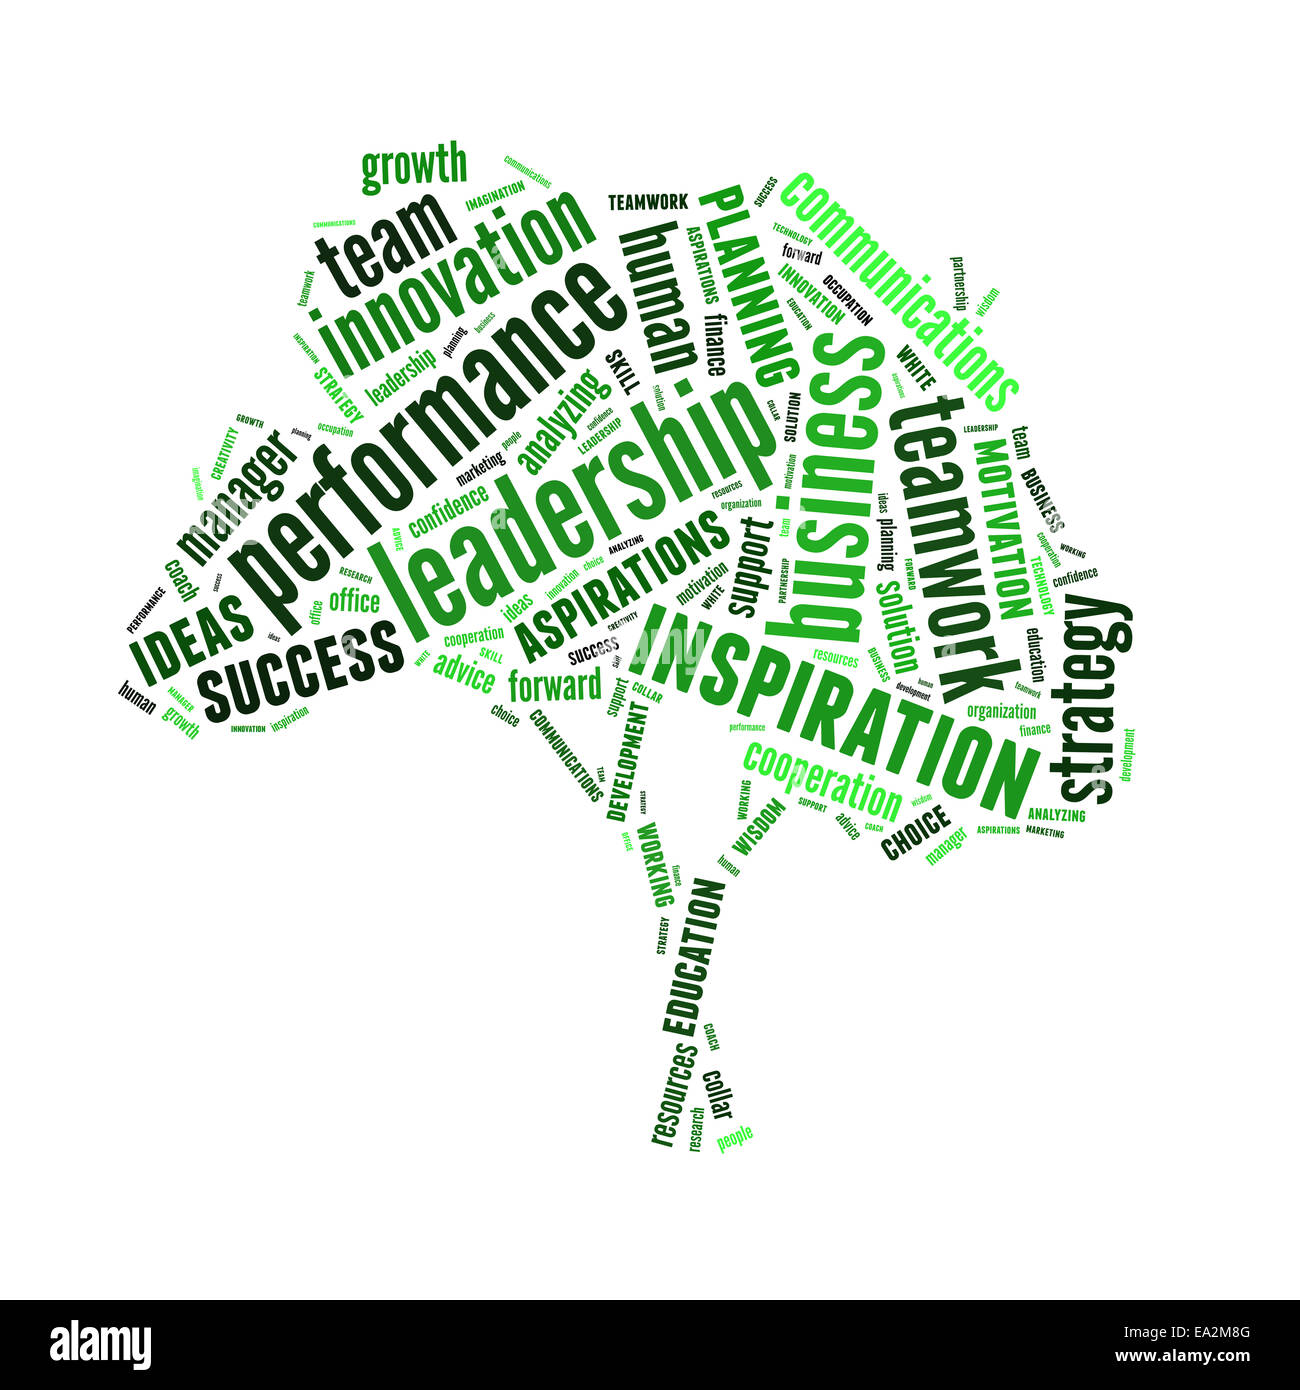 Conceptual text word cloud or tagcloud isolated on white background, metaphor for business, team, teamwork, management - Stock Image